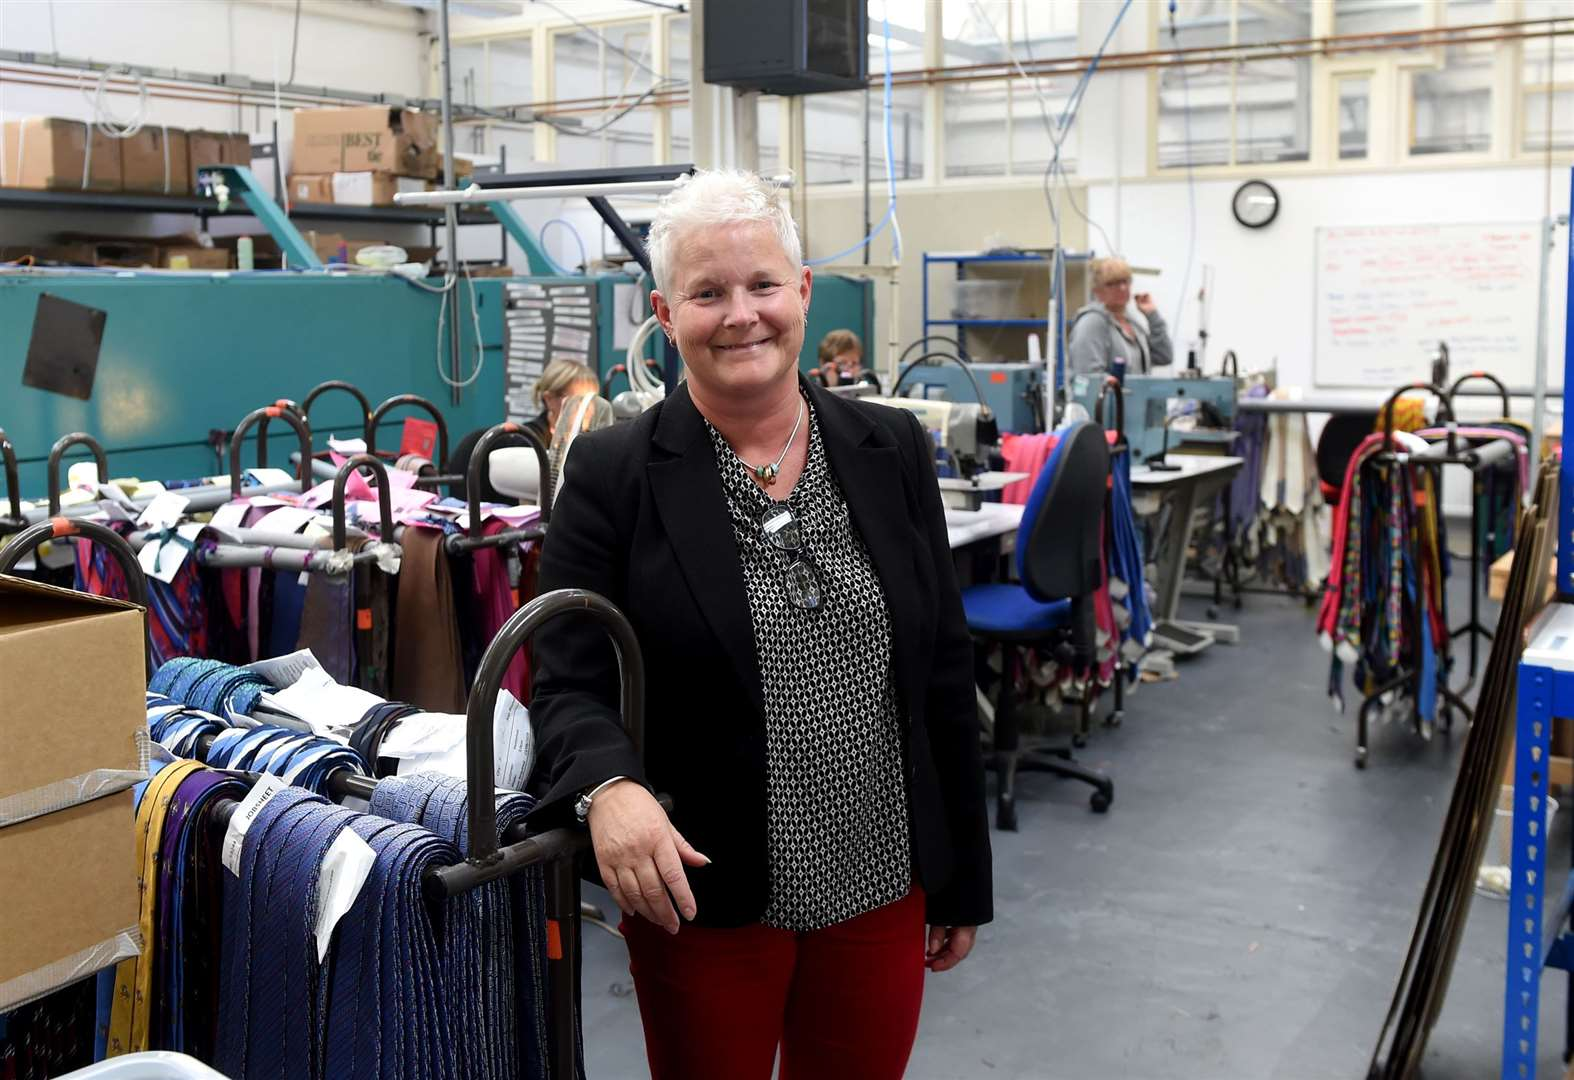 Vanners relocates tie-making business to Sudbury to bring all operations under one roof